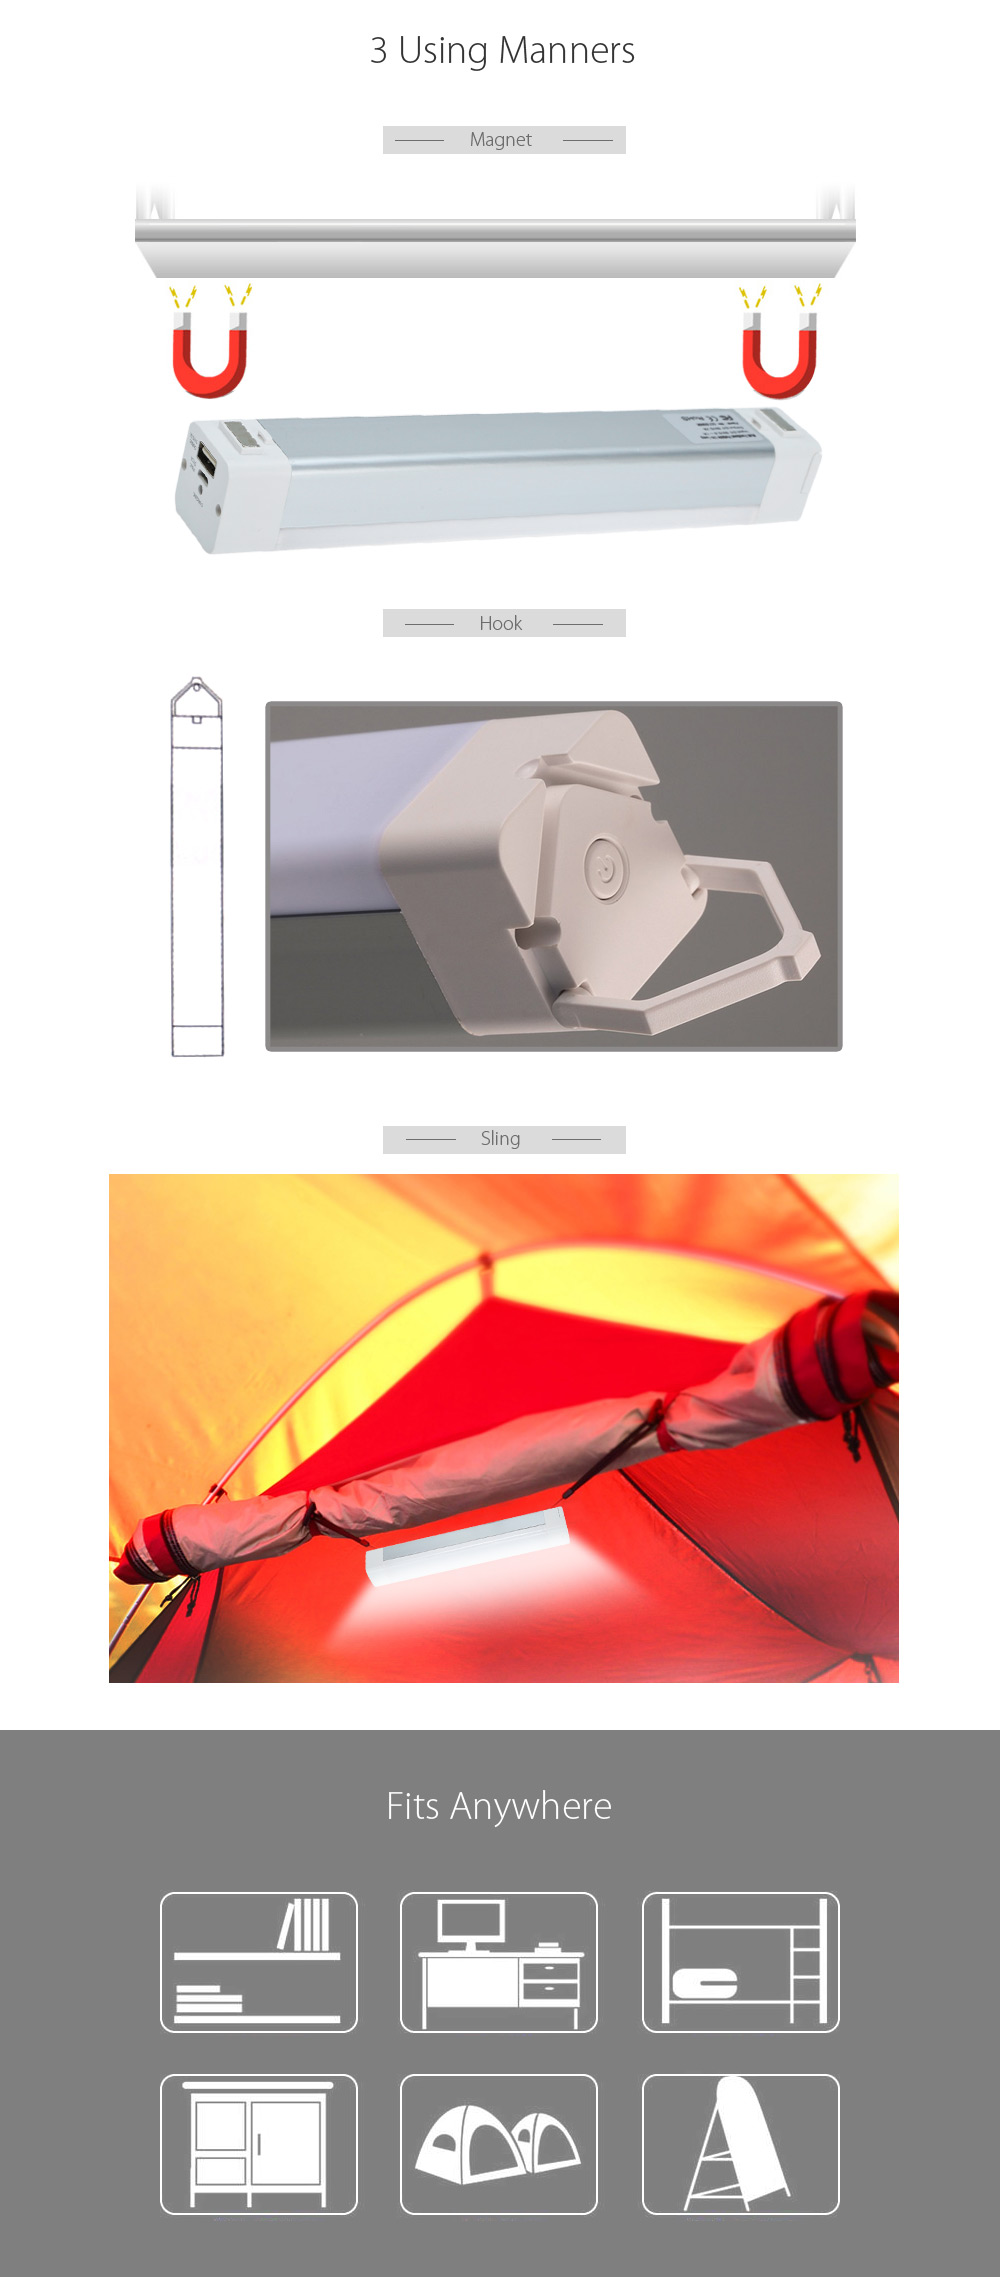 5W USB Rechargeable LED Tube Light Charging / Discharging